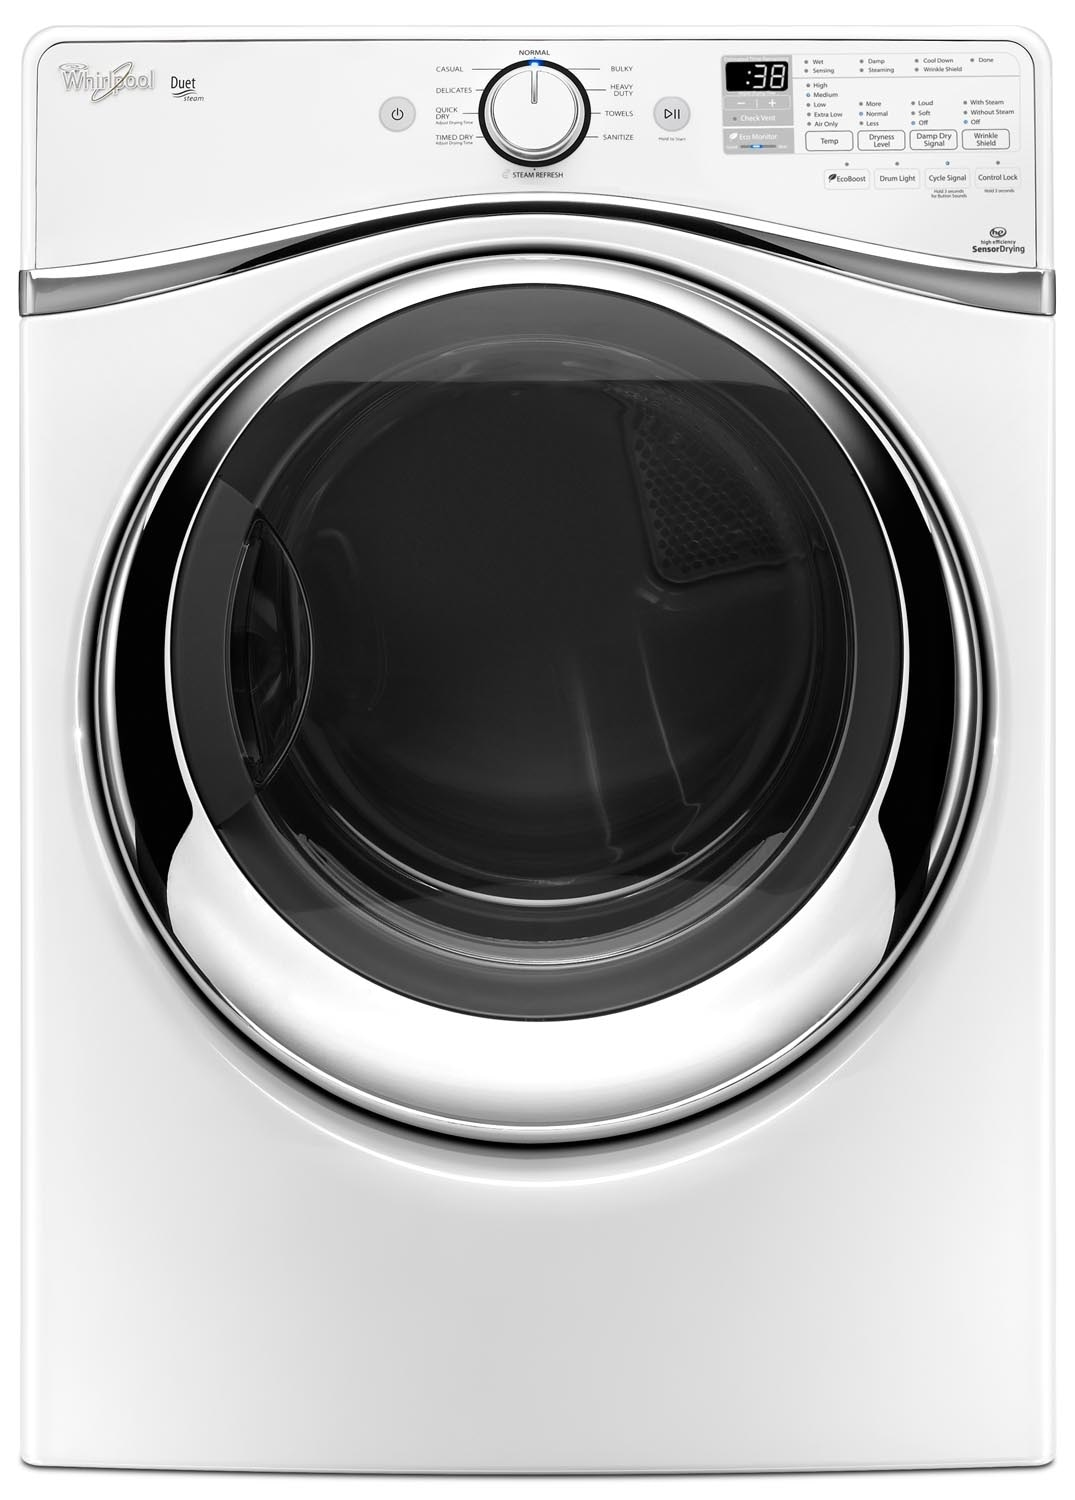 Washers and Dryers - Whirlpool Dryer (7.3 Cu. Ft.) YWED95HEDW